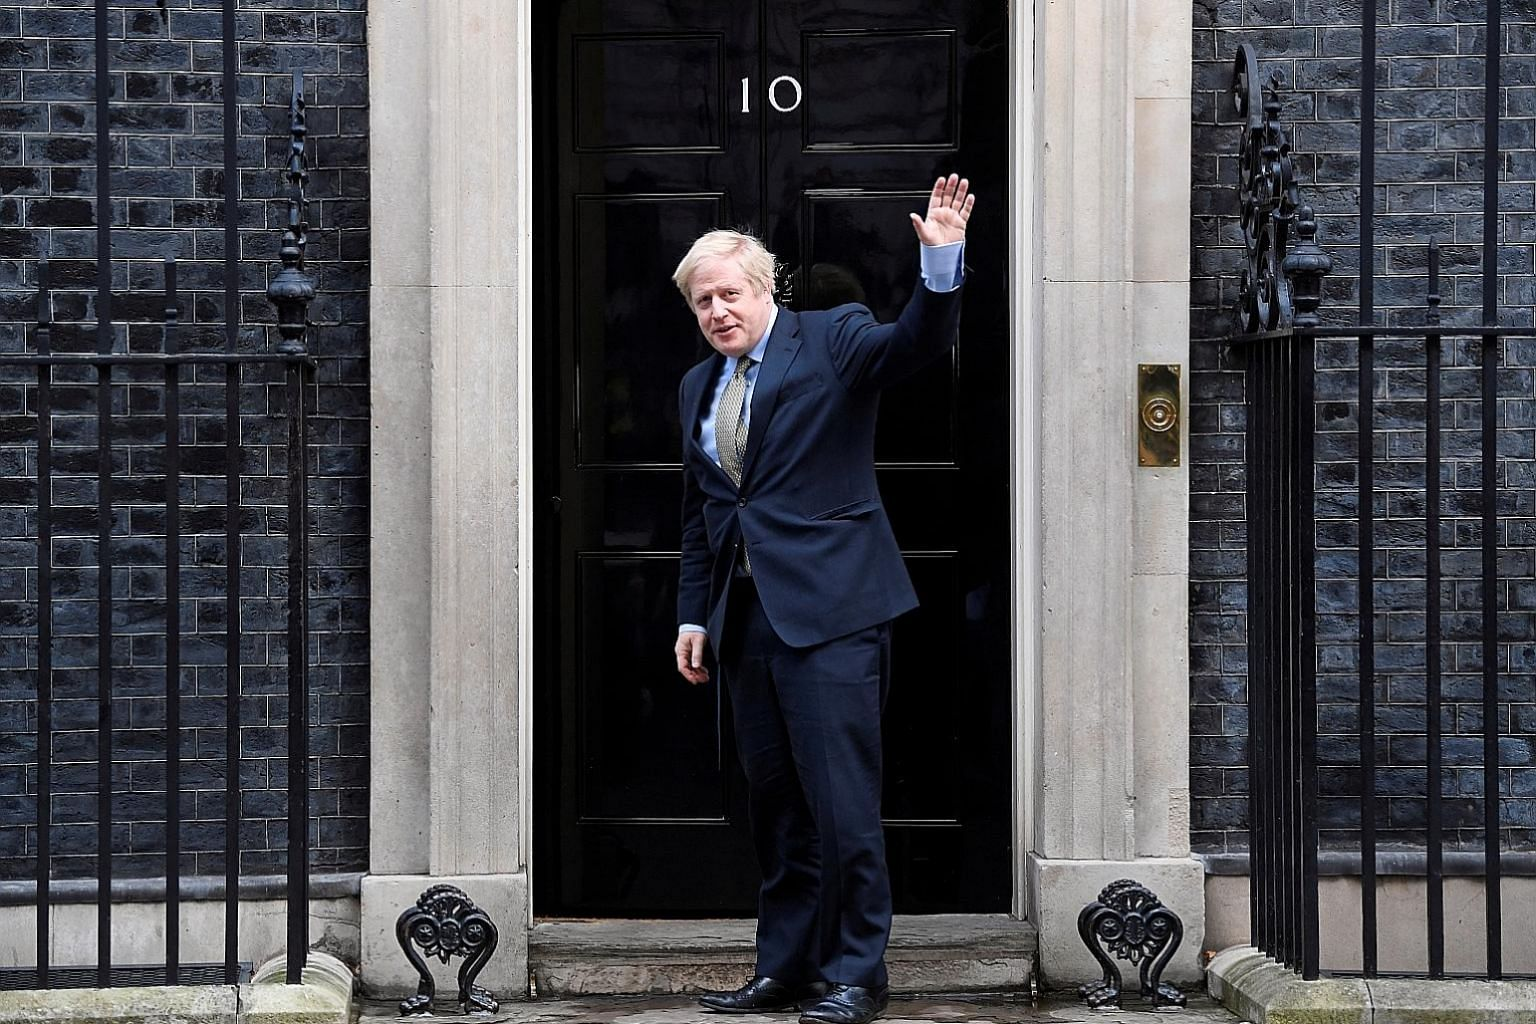 British Prime Minister Boris Johnson arriving at 10 Downing Street yesterday after meeting Queen Elizabeth at Buckingham Palace to ask for permission to form a government. The Conservatives won 365 out of 650 seats in the House of Commons.